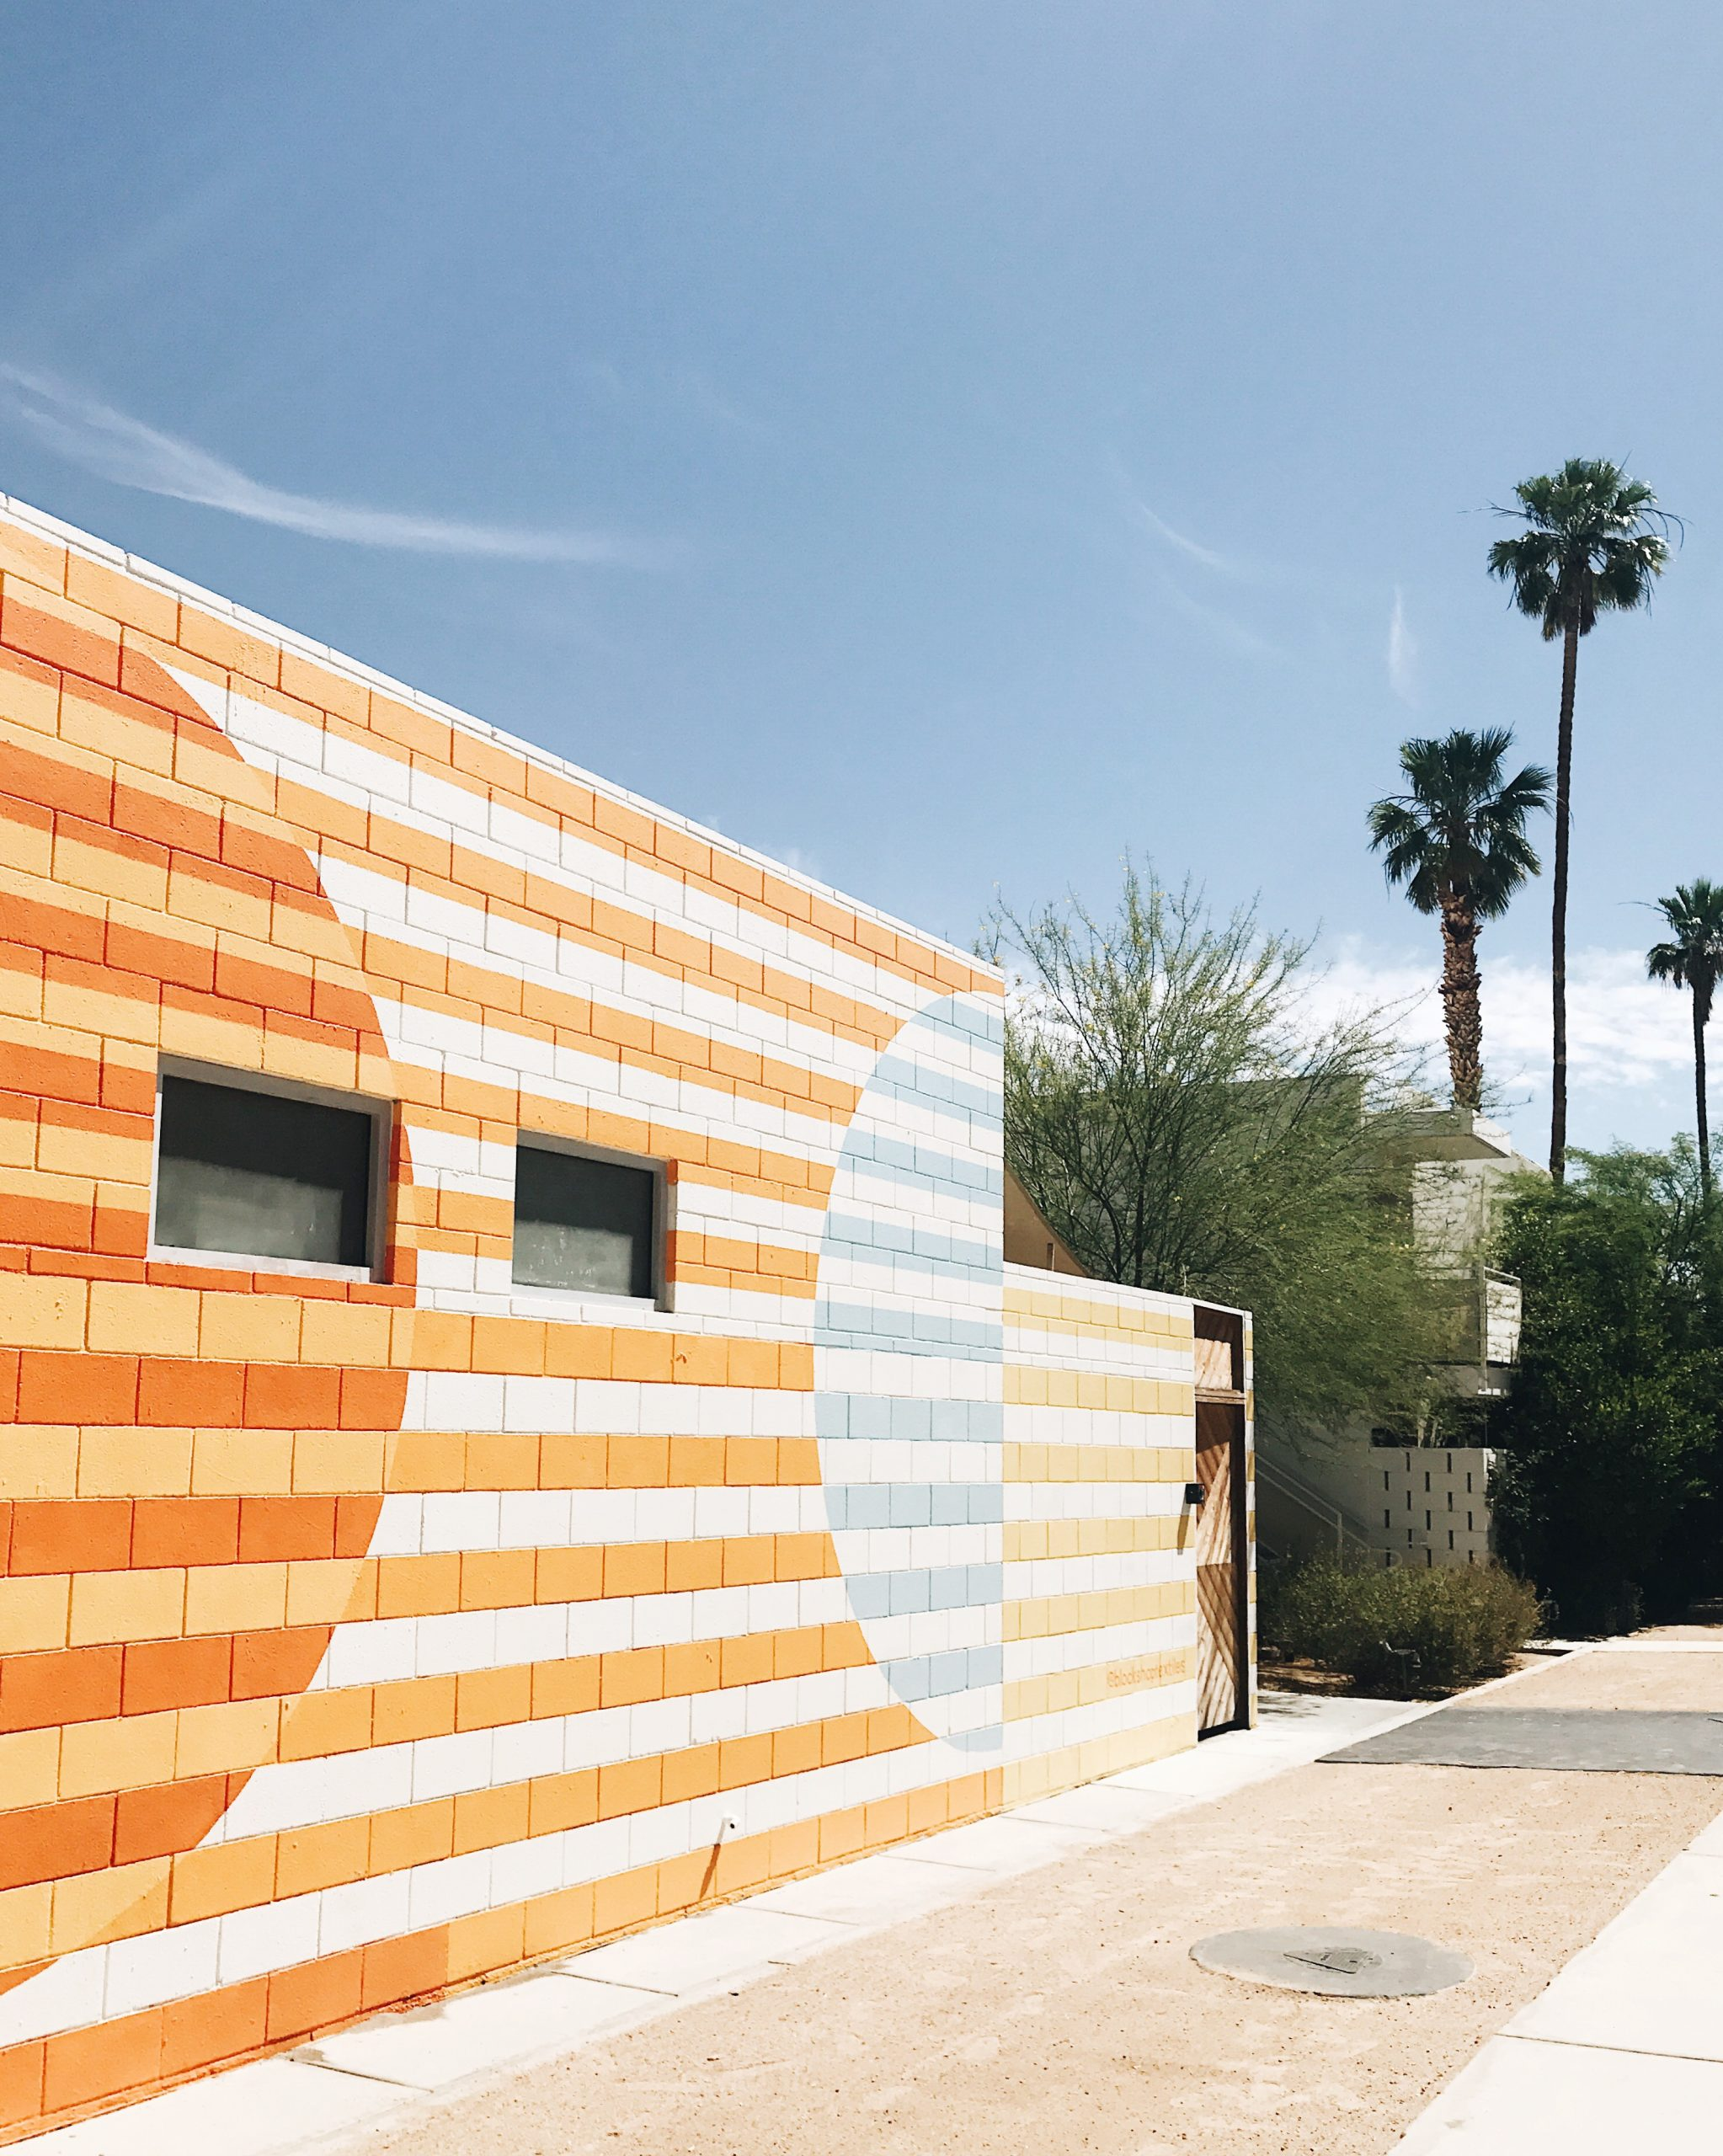 jojotastic travel guide and visual diary for palm springs. the ace hotel + block shop textiles wall mural